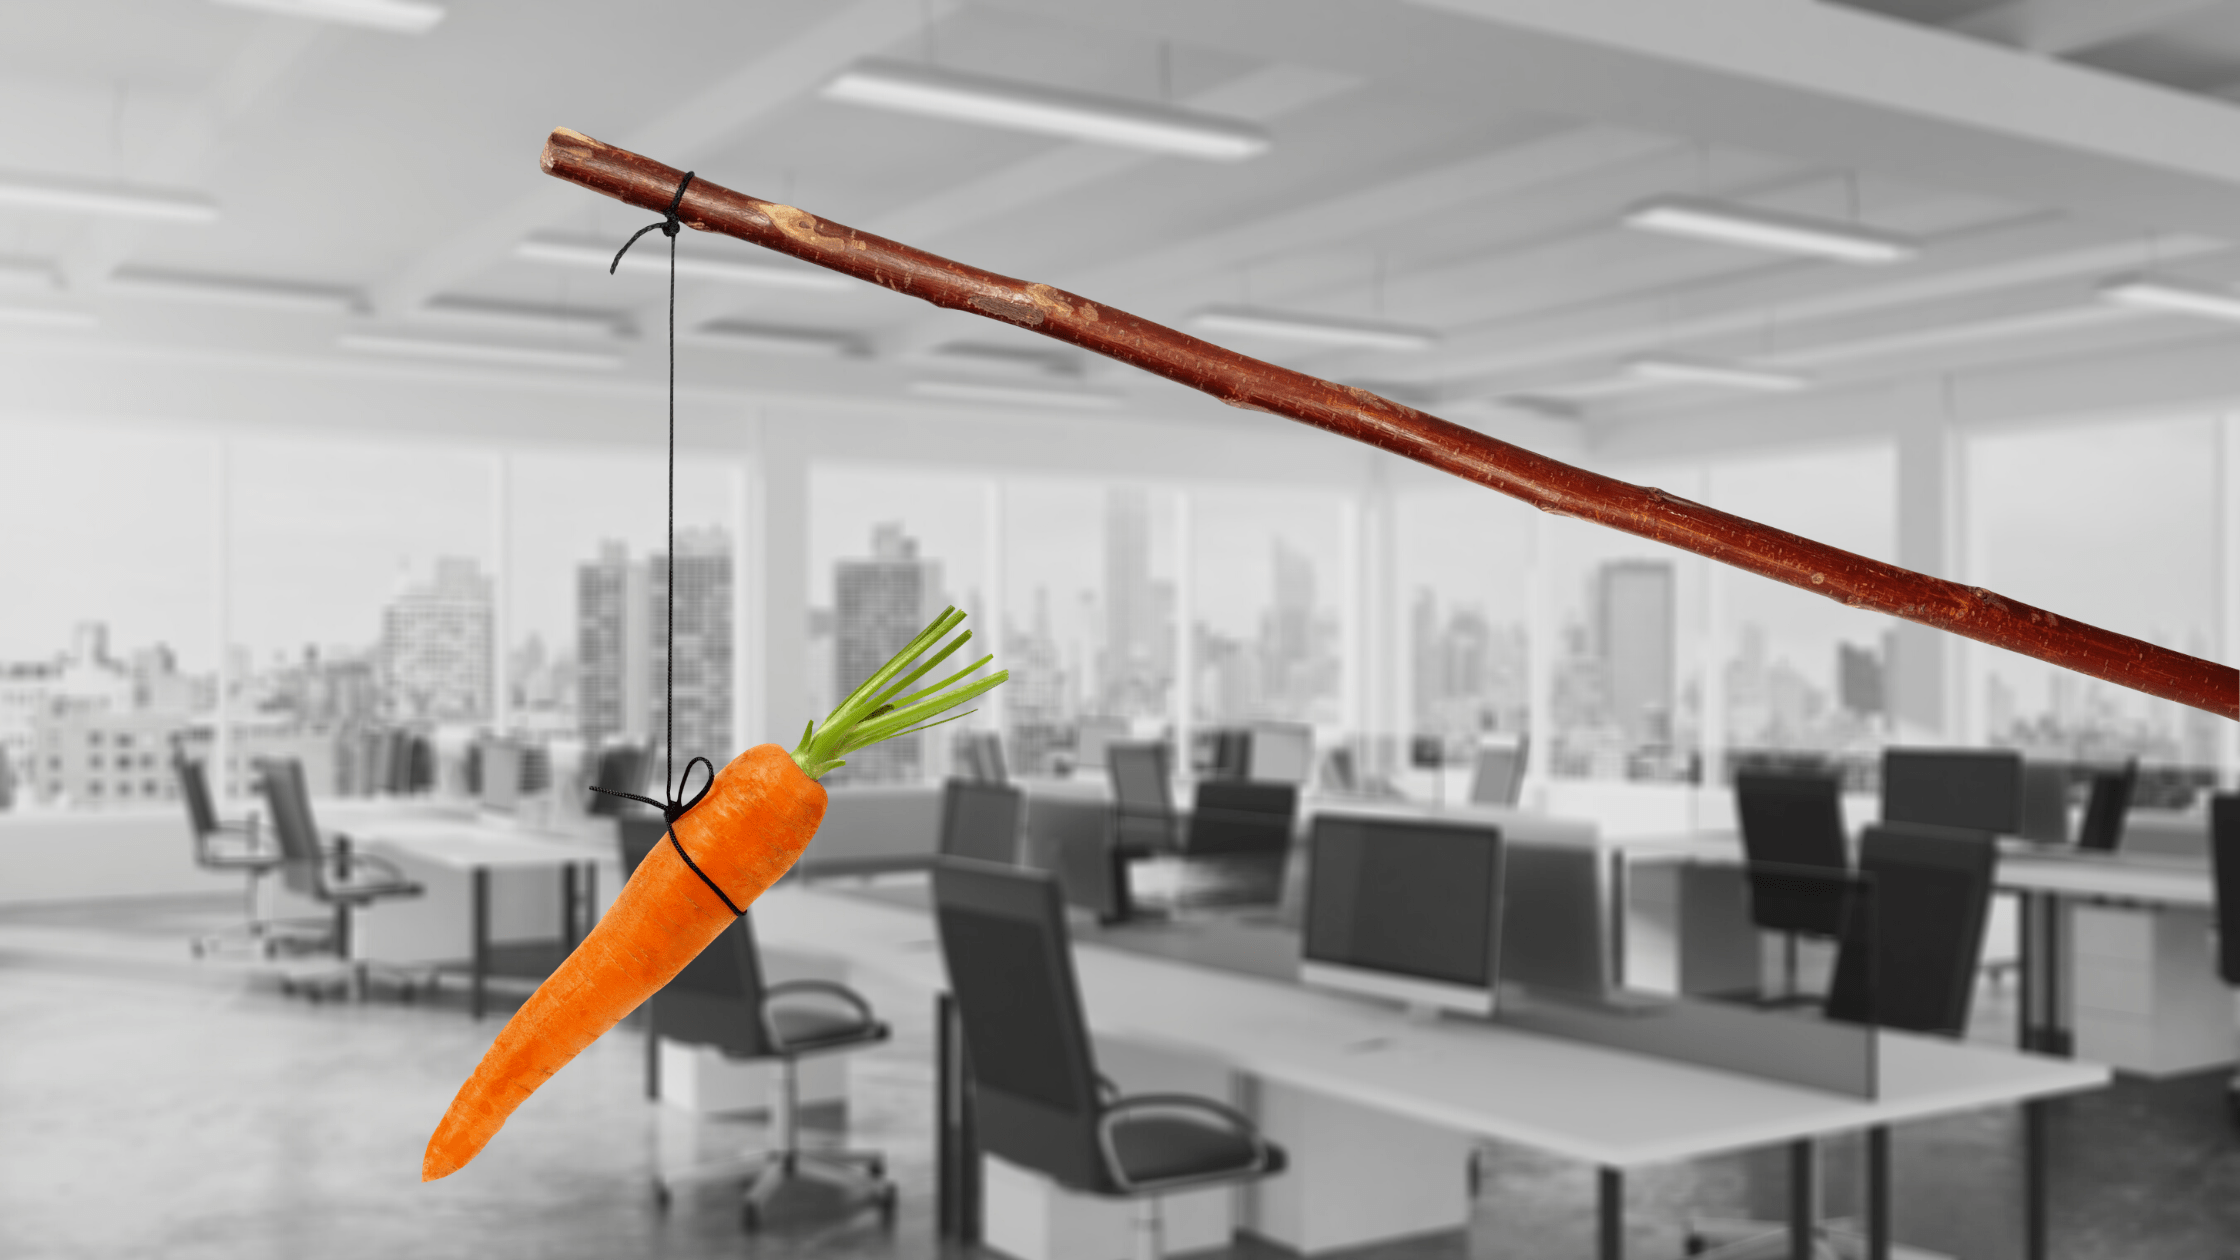 A-Carrot-a-Stick-and-the-Mind-Sales-Motivation-Approaches-for-Growing-Businesses-Banner-Image